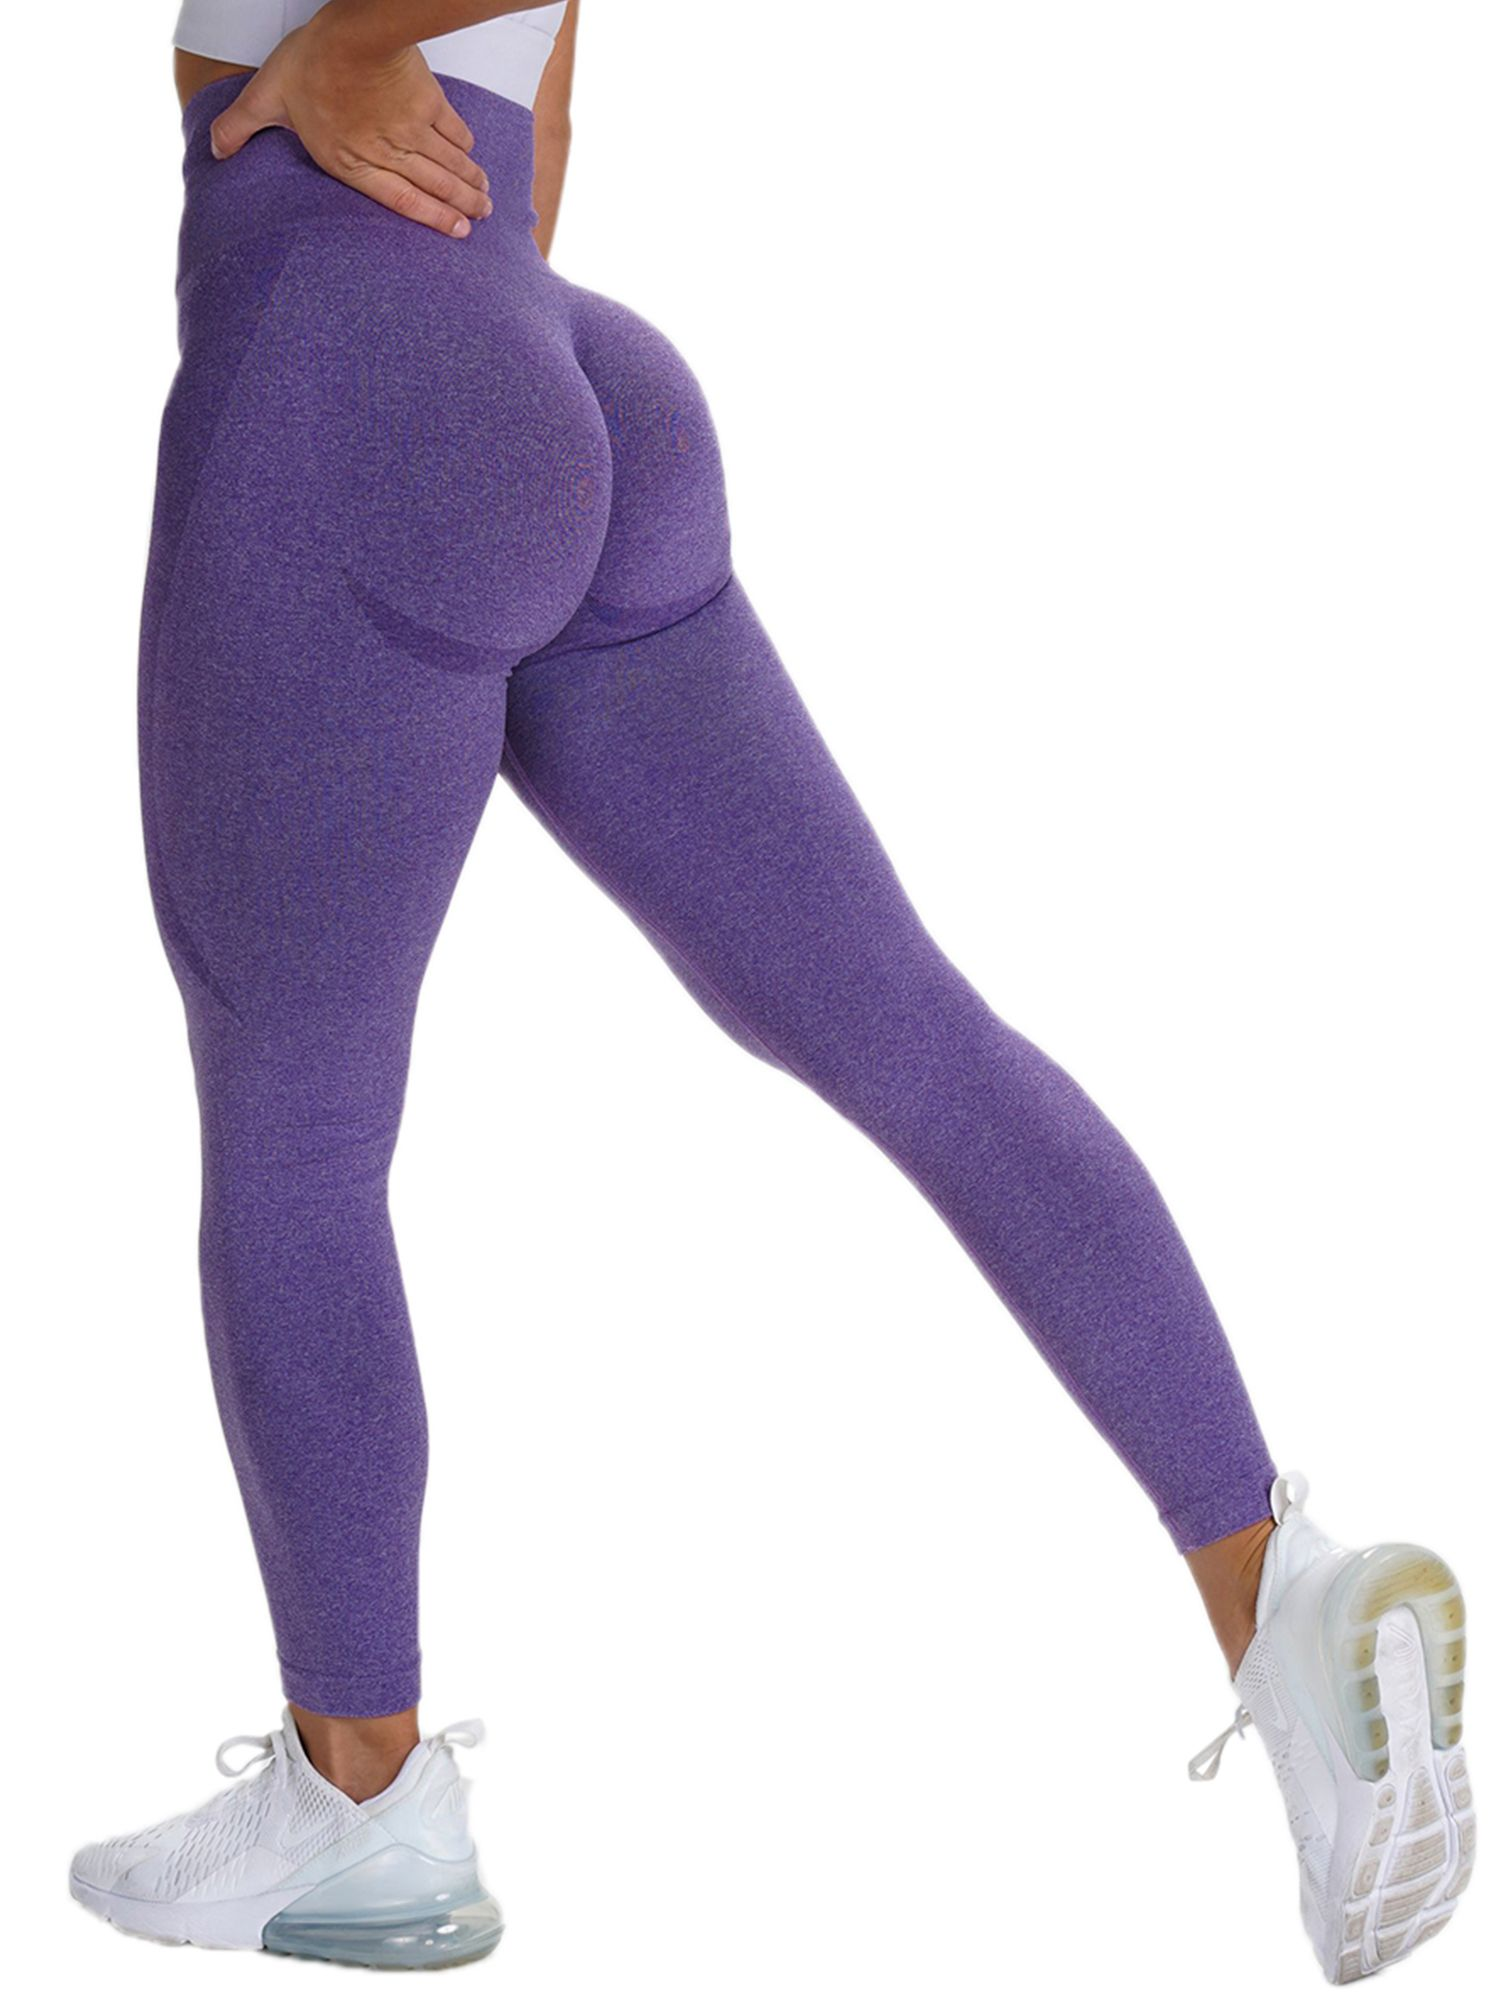 Type:Women Yoga PantsPattern Type: Solid ColorWaist: High WaistSize: S,M,L (please follow the Sizing chart in the left photo